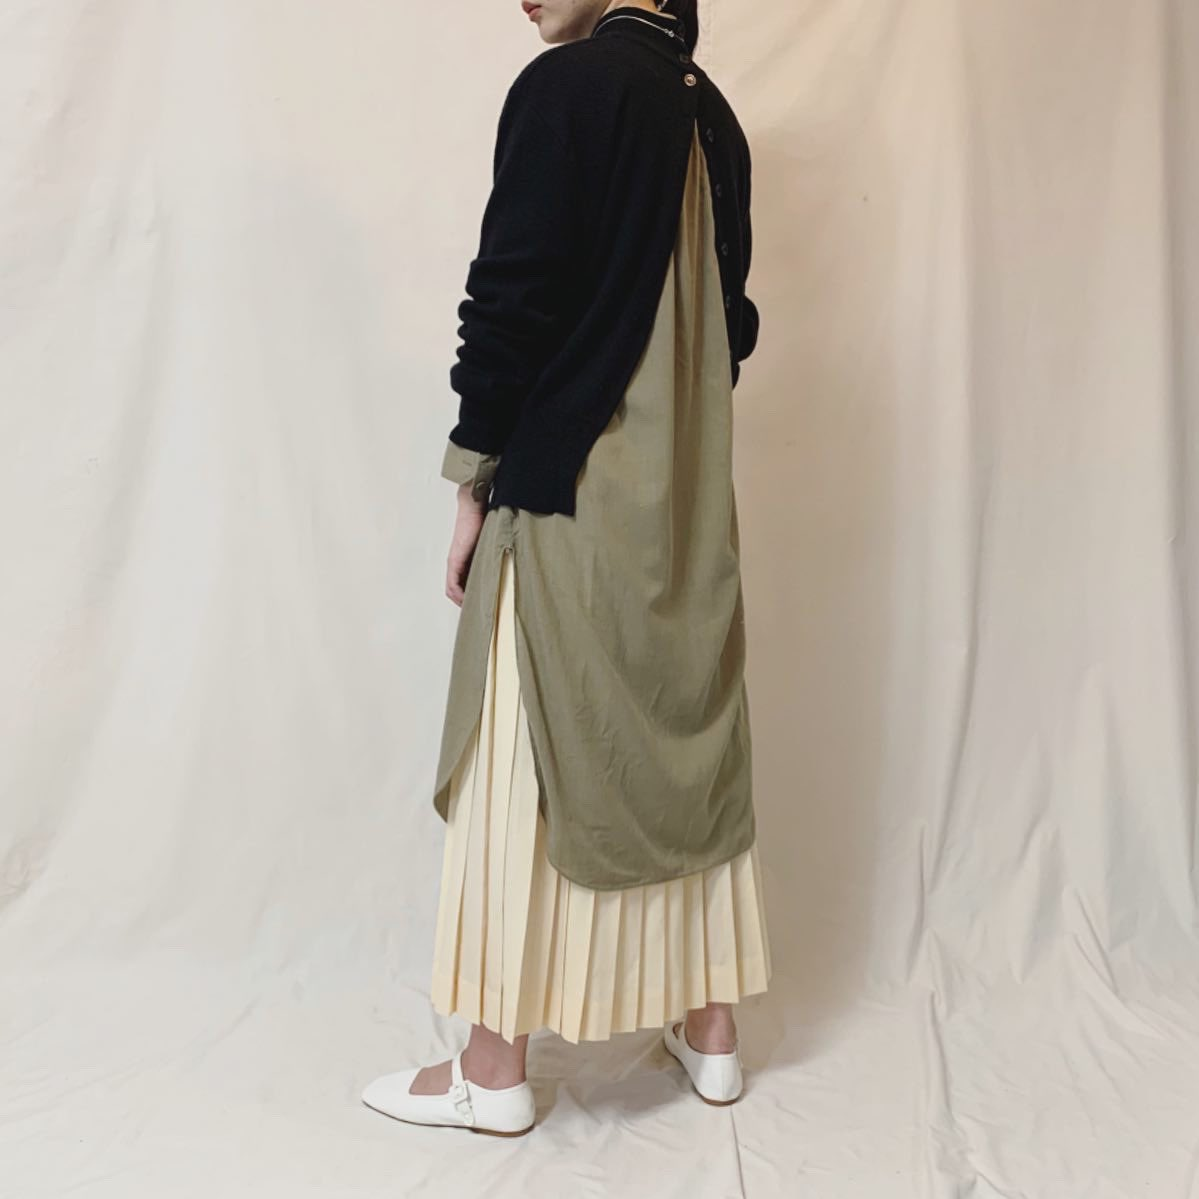 new arrival.  ✔︎back buttons black high neck  sweater ✔︎khaki stand collar shirt onepiece ✔︎cream pleated long skirt pic.twitter.com/lSsWMHnfbk